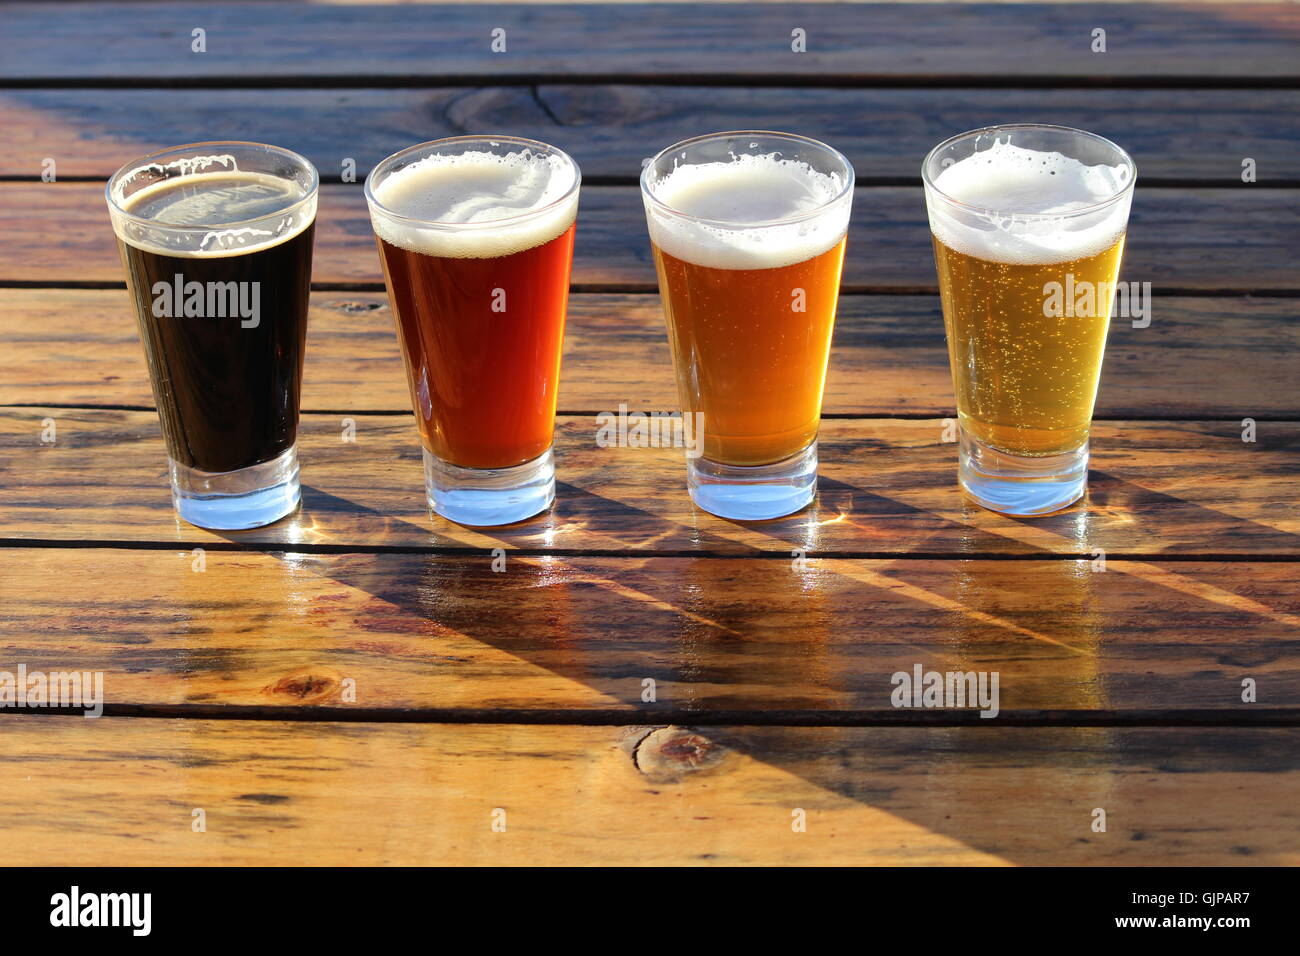 A selection of four craft beers during a tasting session on a wooden table - Stock Image